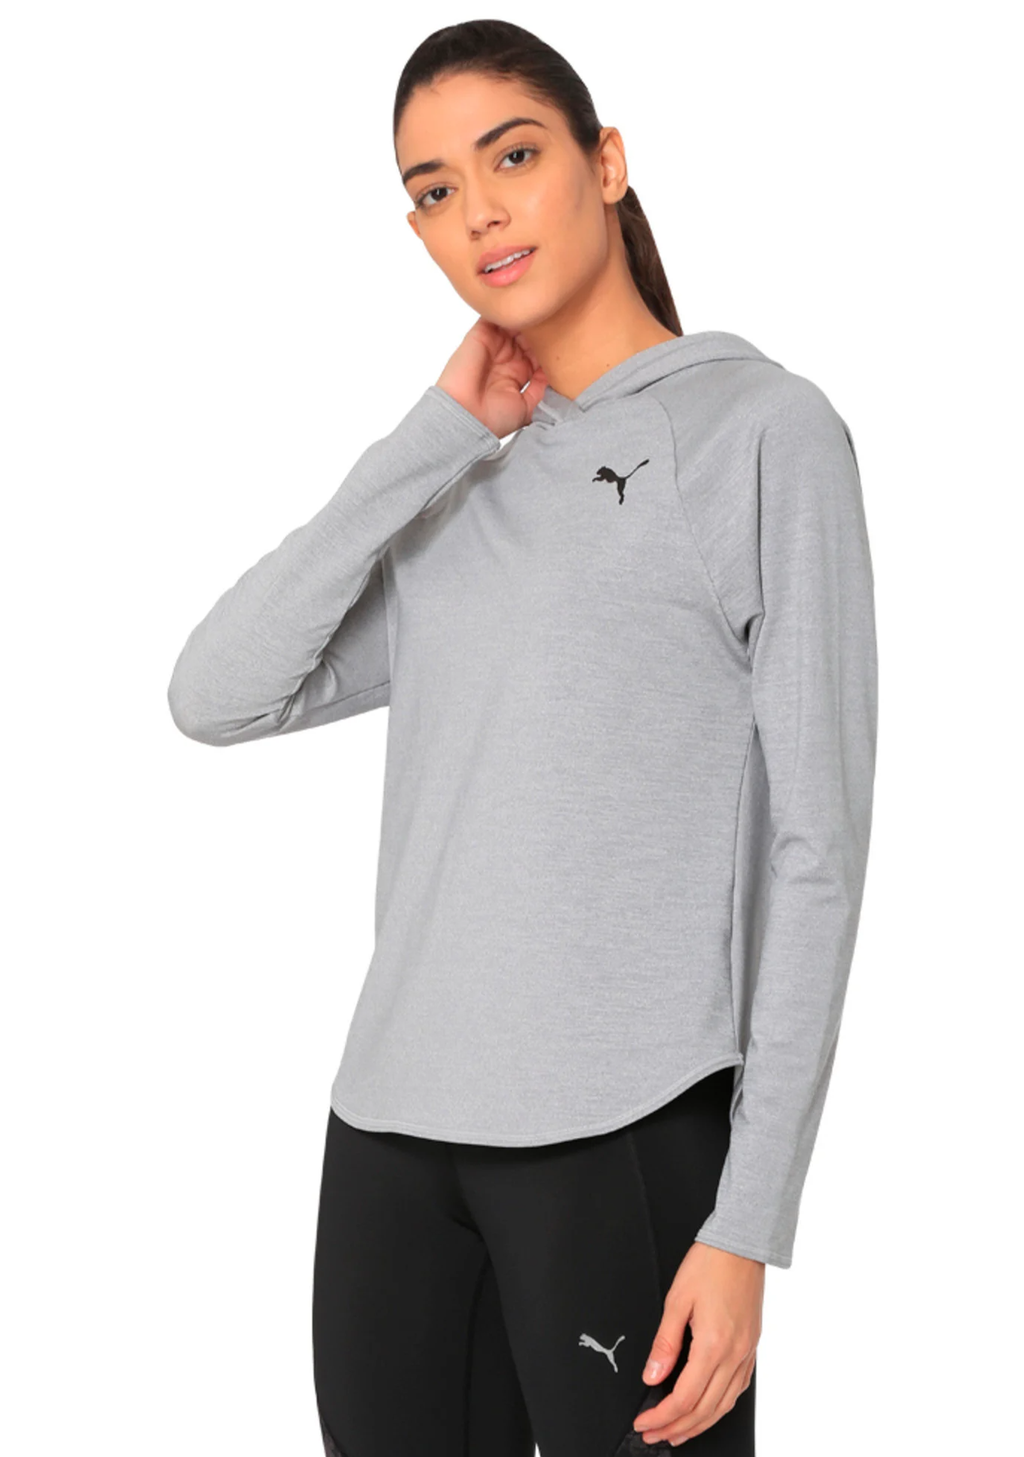 PUMA WOMENS DRY-CELL ACTIVE HOODY LIGHT GREY <br> 851775 04